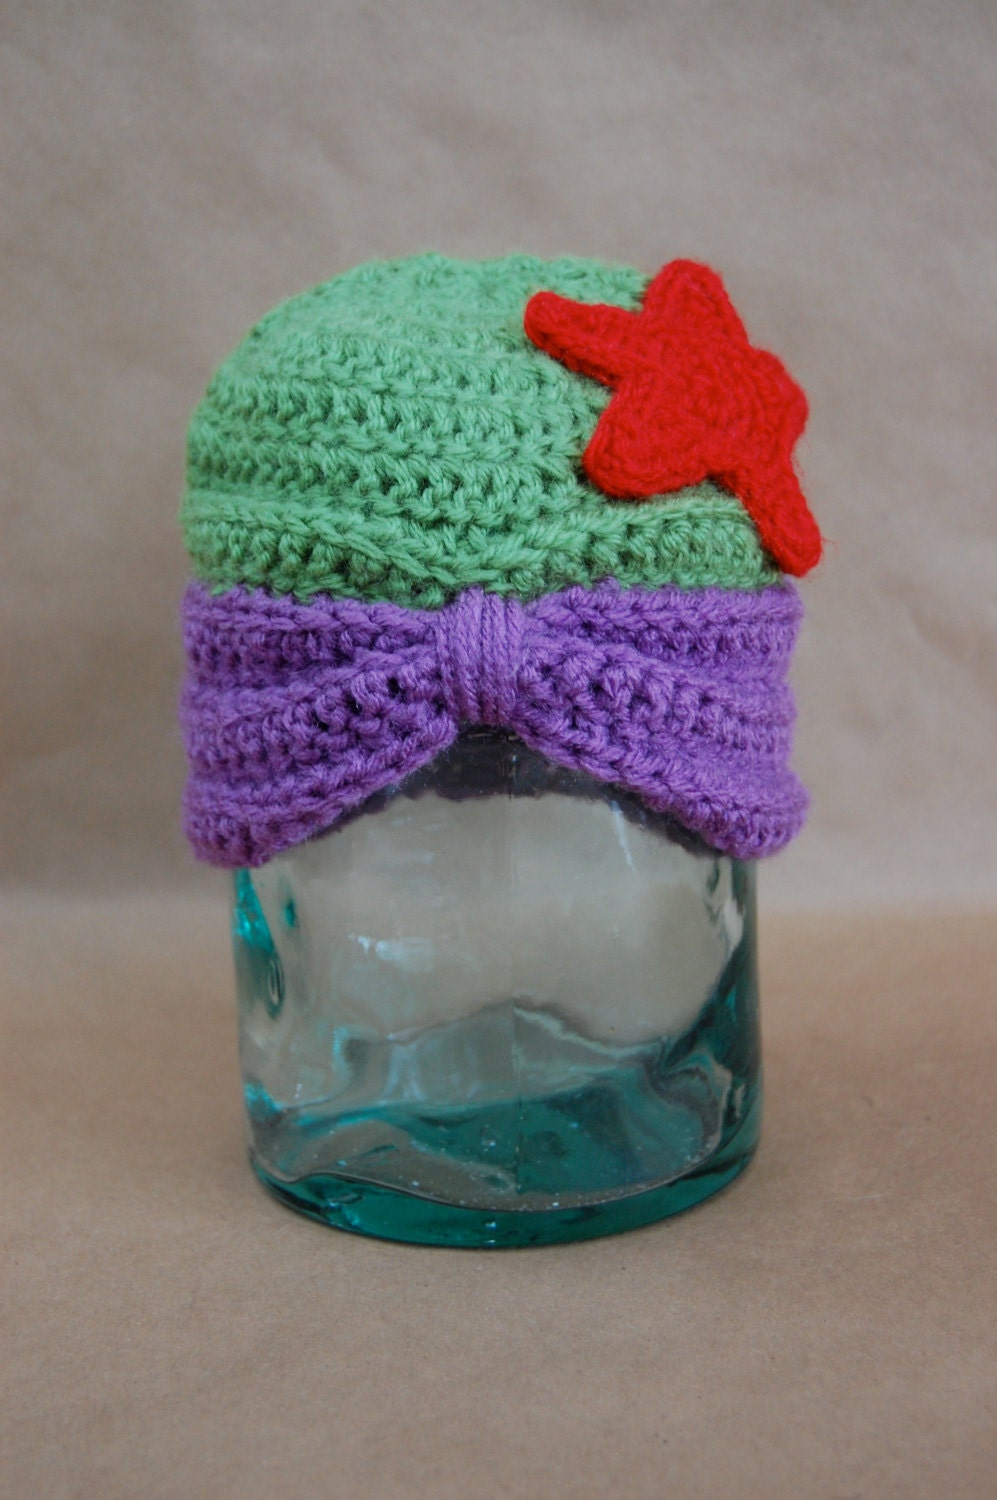 Free Crochet Patterns For Disney Hats : Items similar to Disney Princess Ariel Inspired Crochet ...